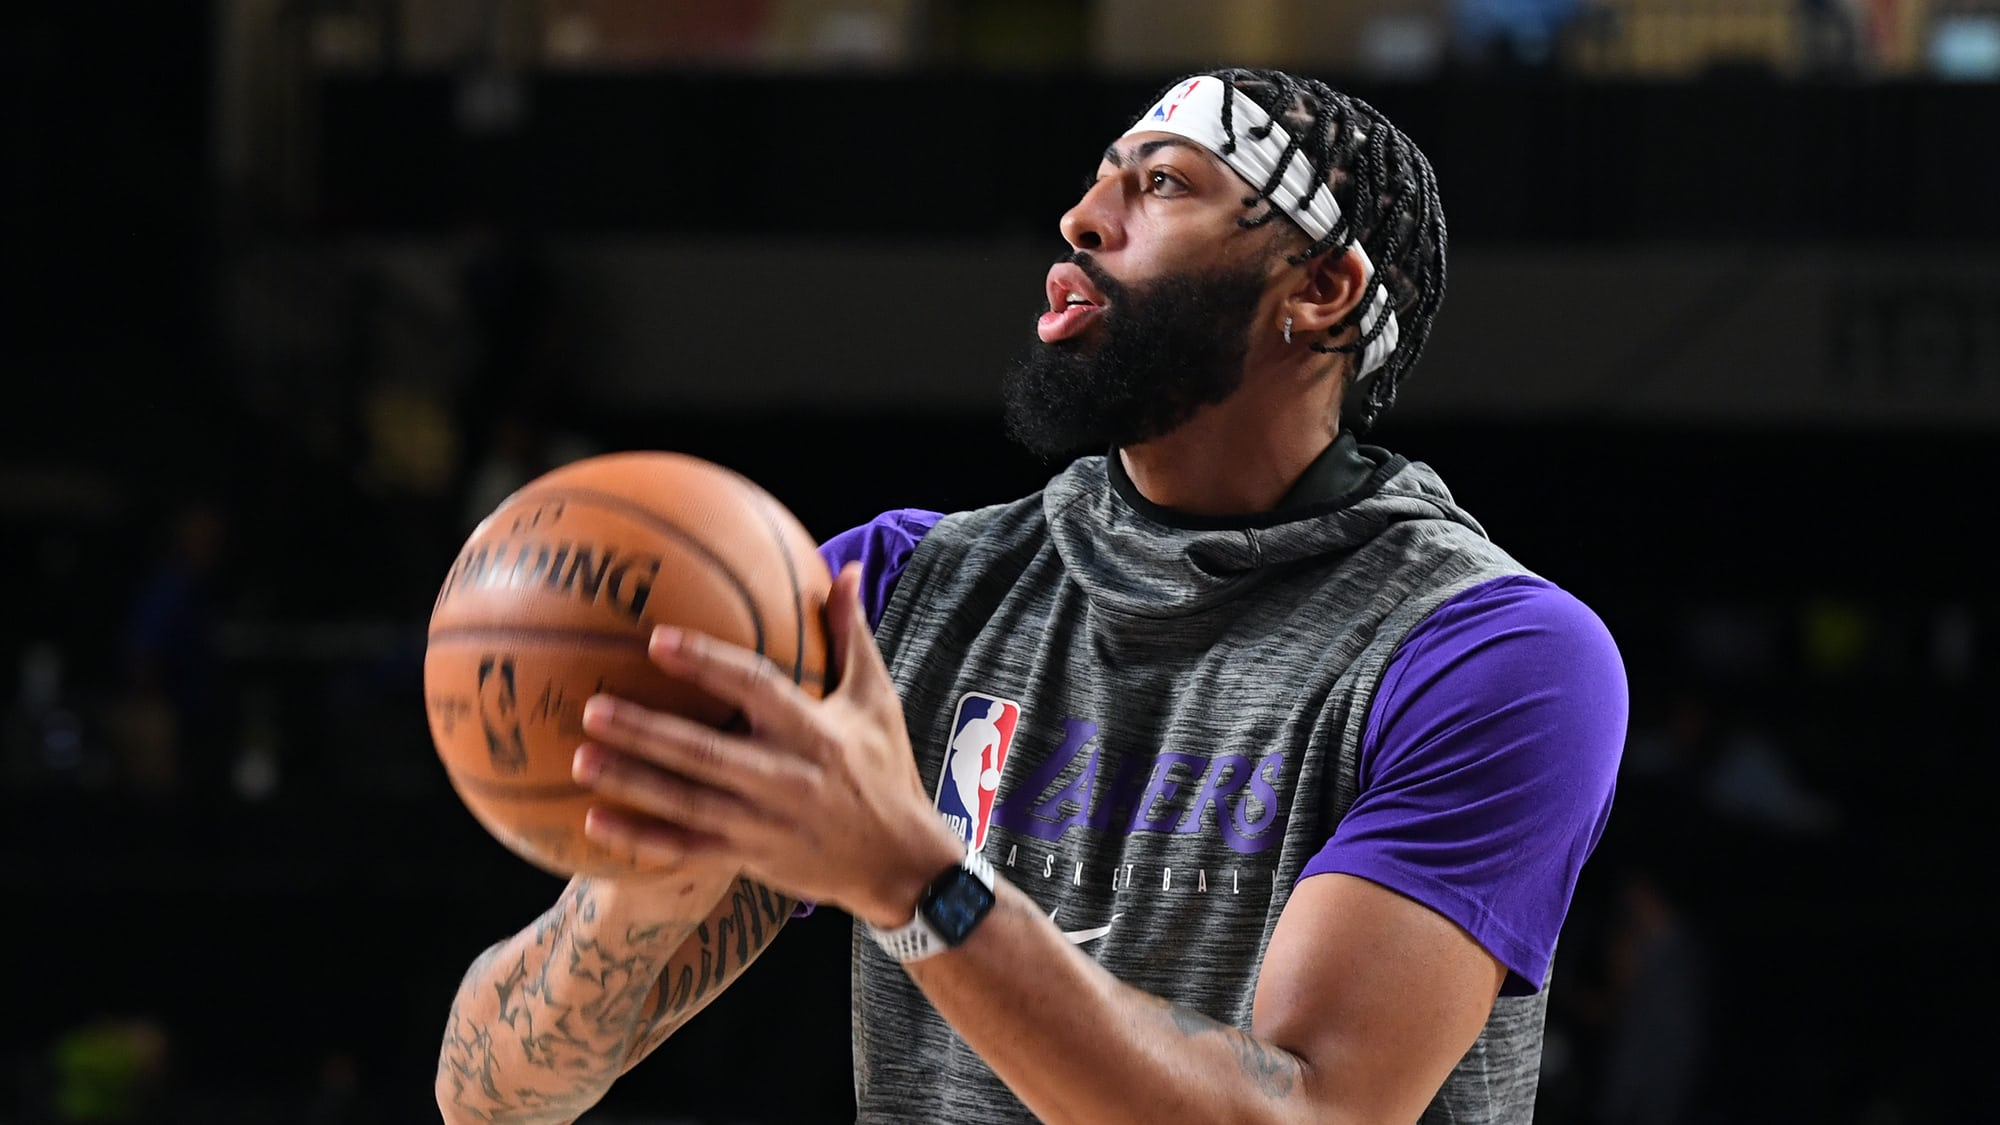 Watch Spotting: Los Angeles Laker Anthony Davis Wearing An Apple Watch While Warming Up For Game 1 Of The NBA Finals